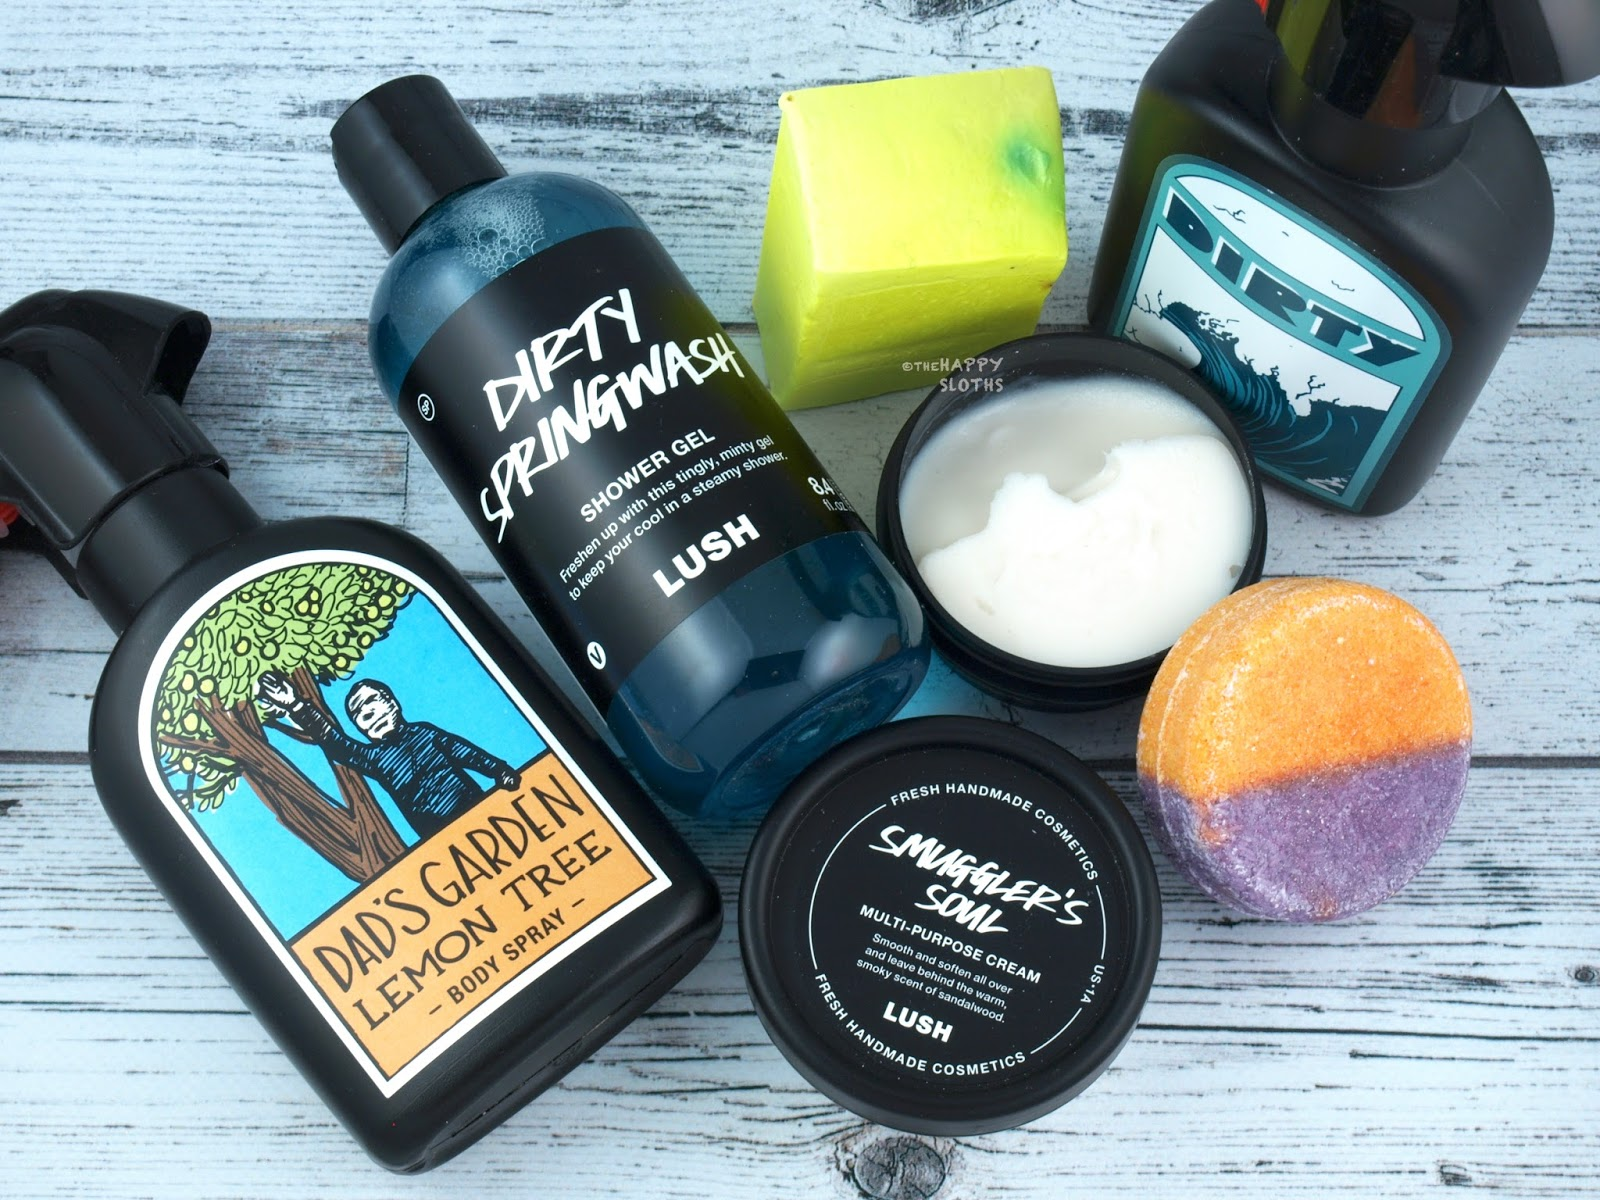 Lush Father's Day 2017 Gift Guide